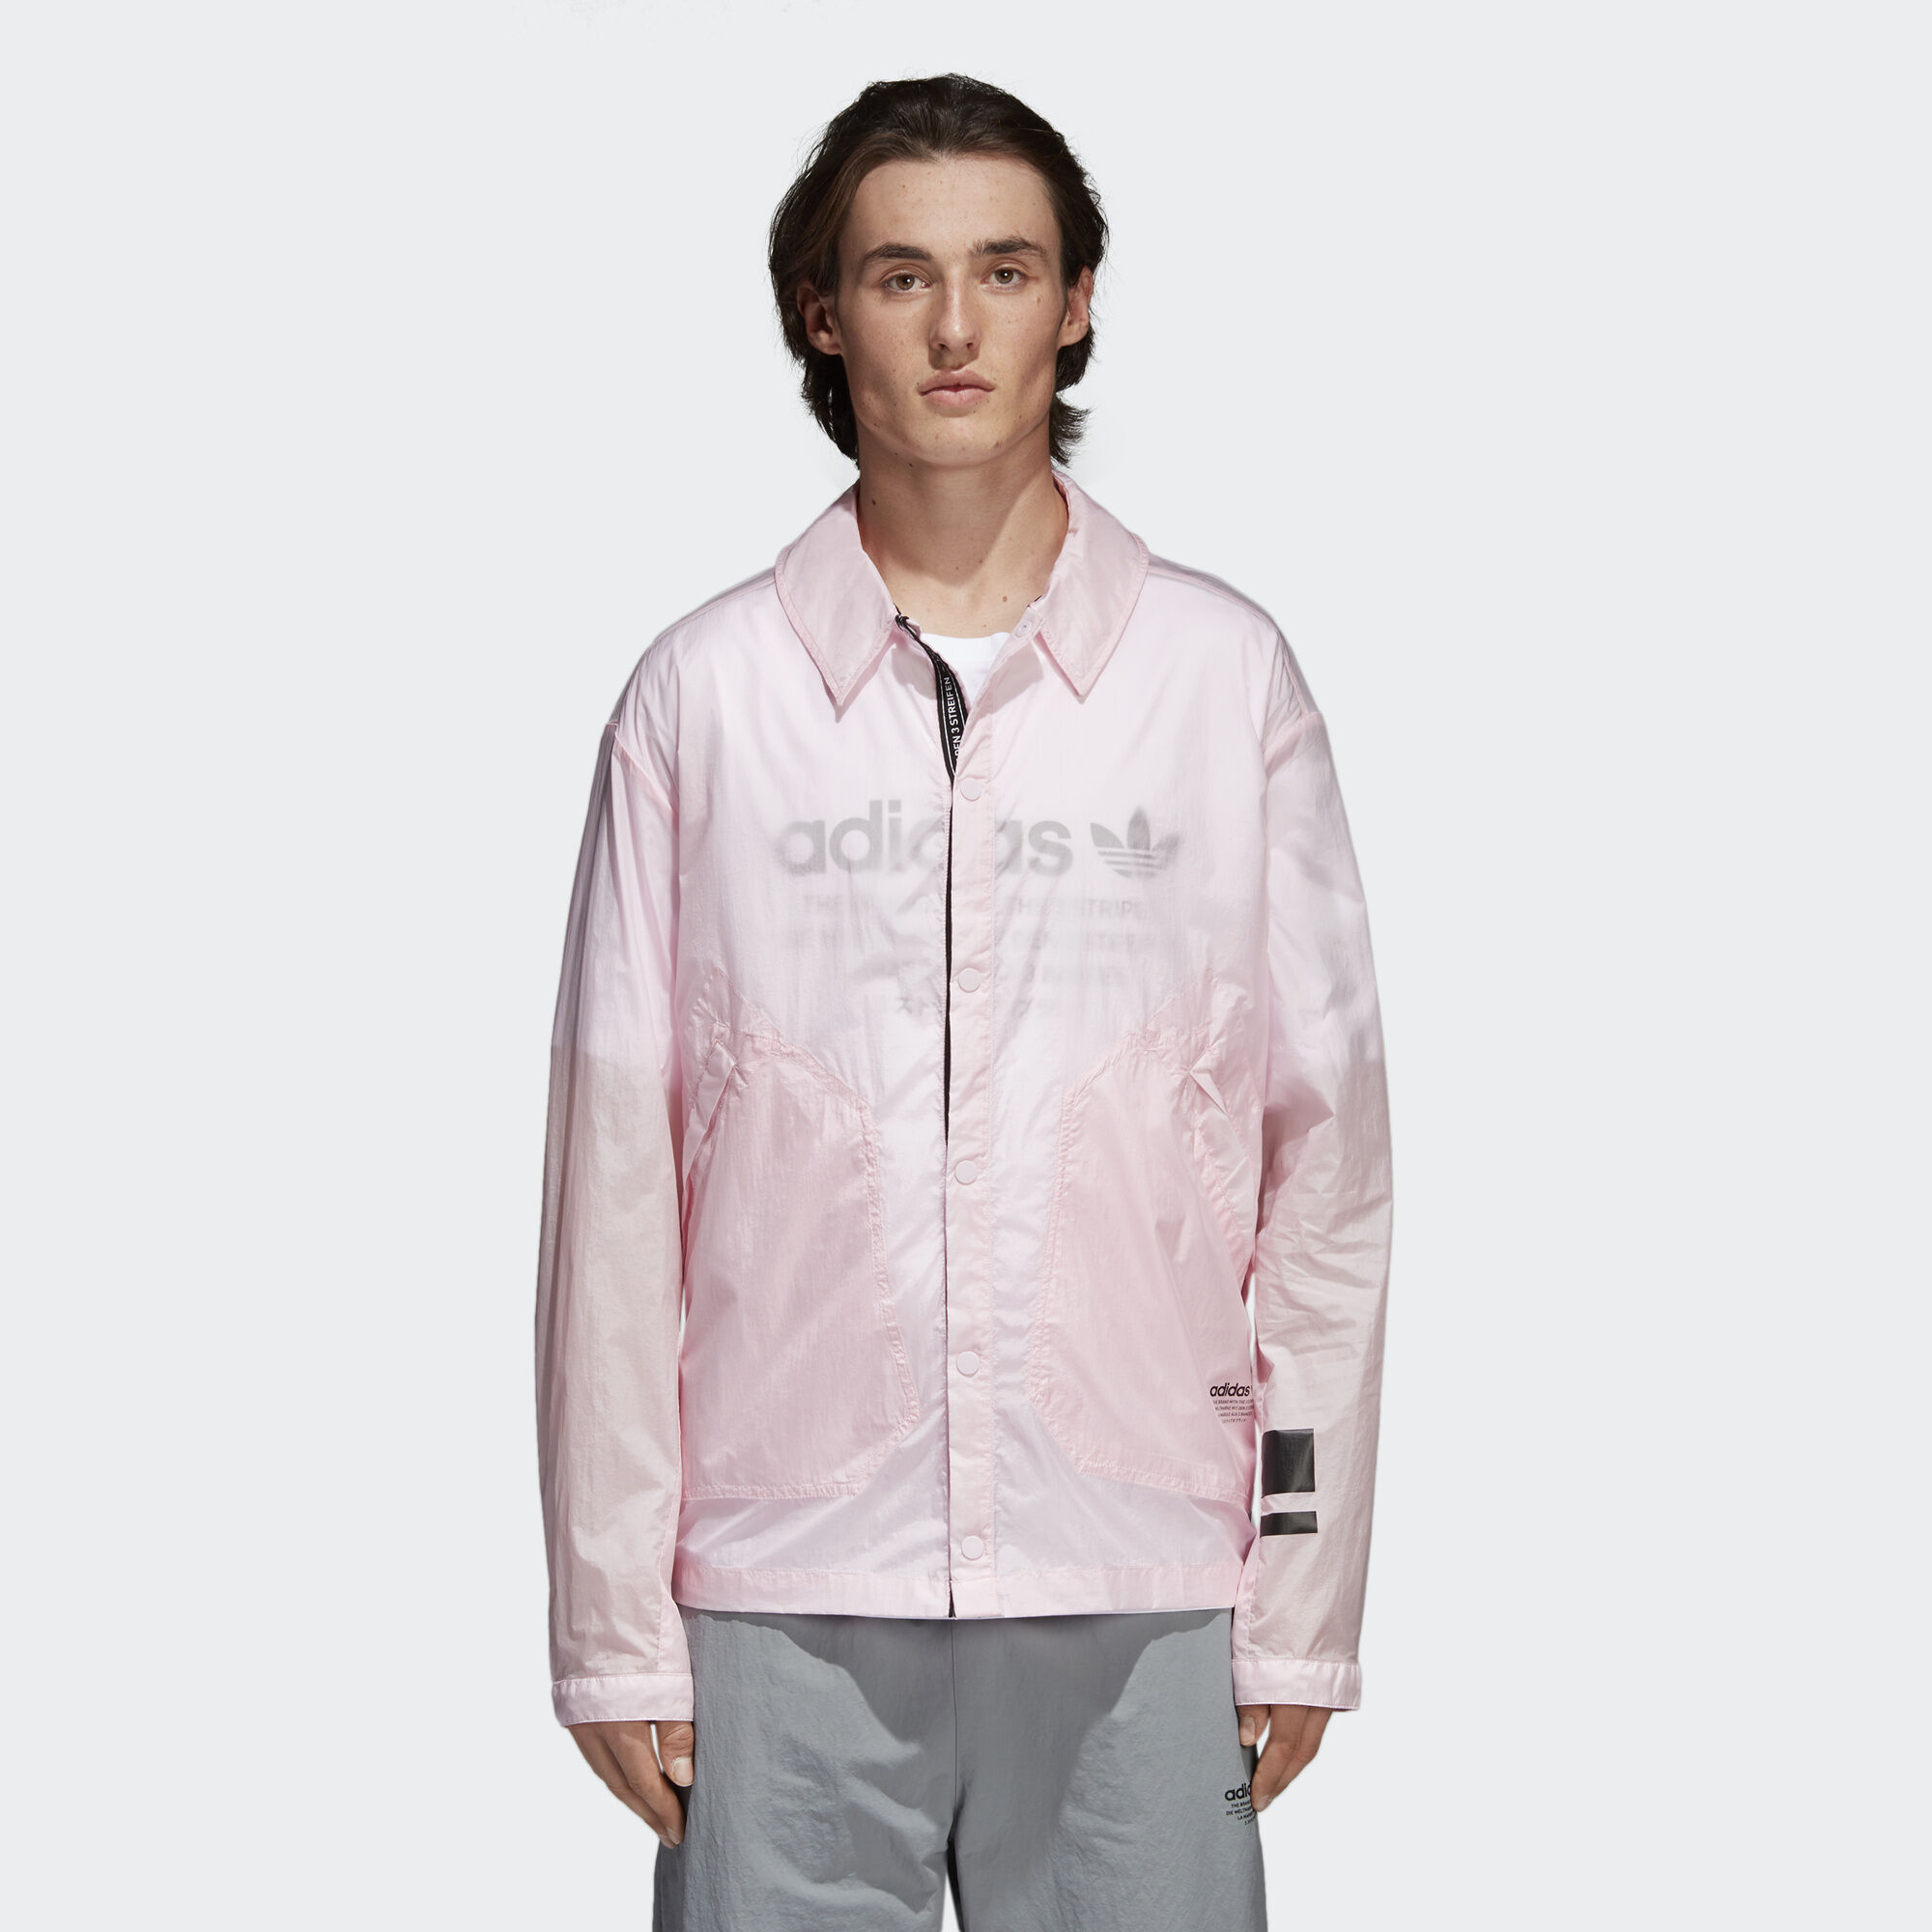 adidas NMD Coach Shirt Jacket - Pink | adidas Asia/Middle East